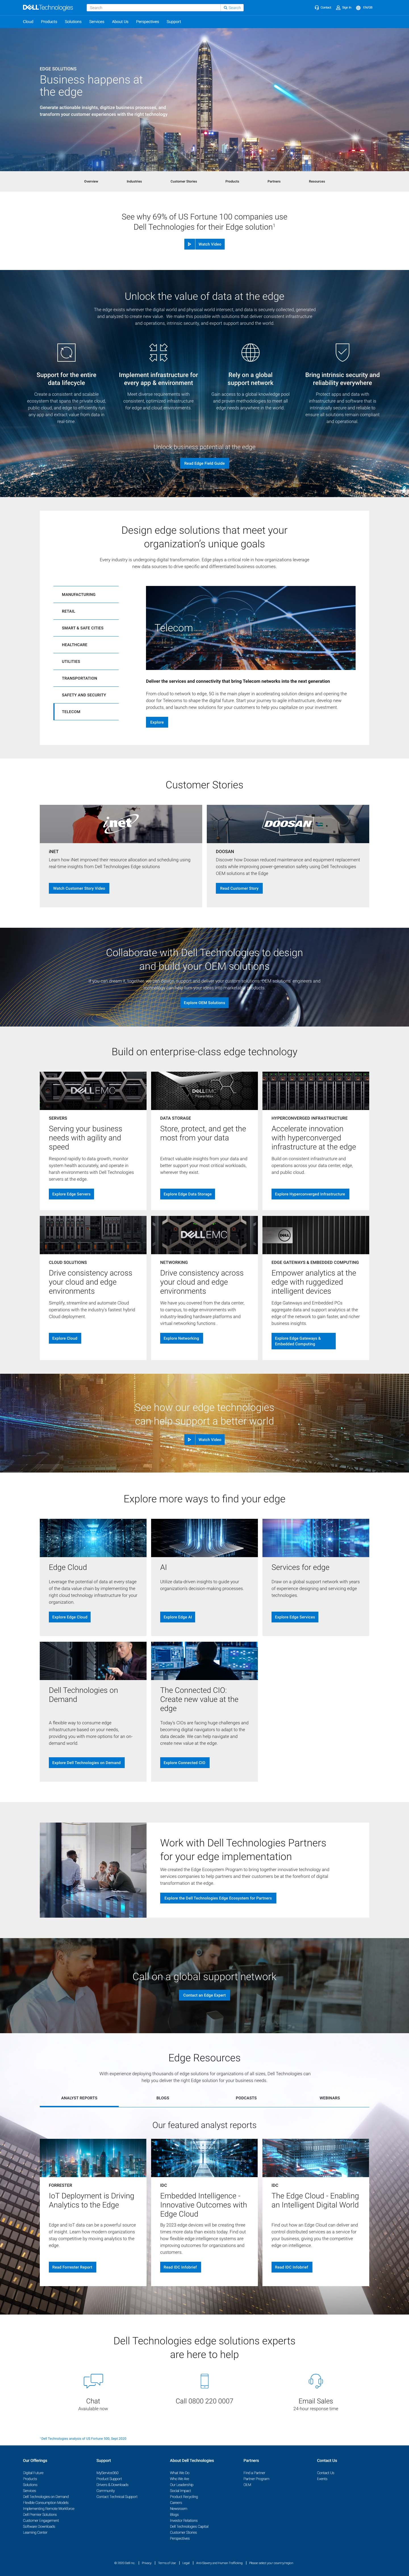 dt-edge-solutions-webpage